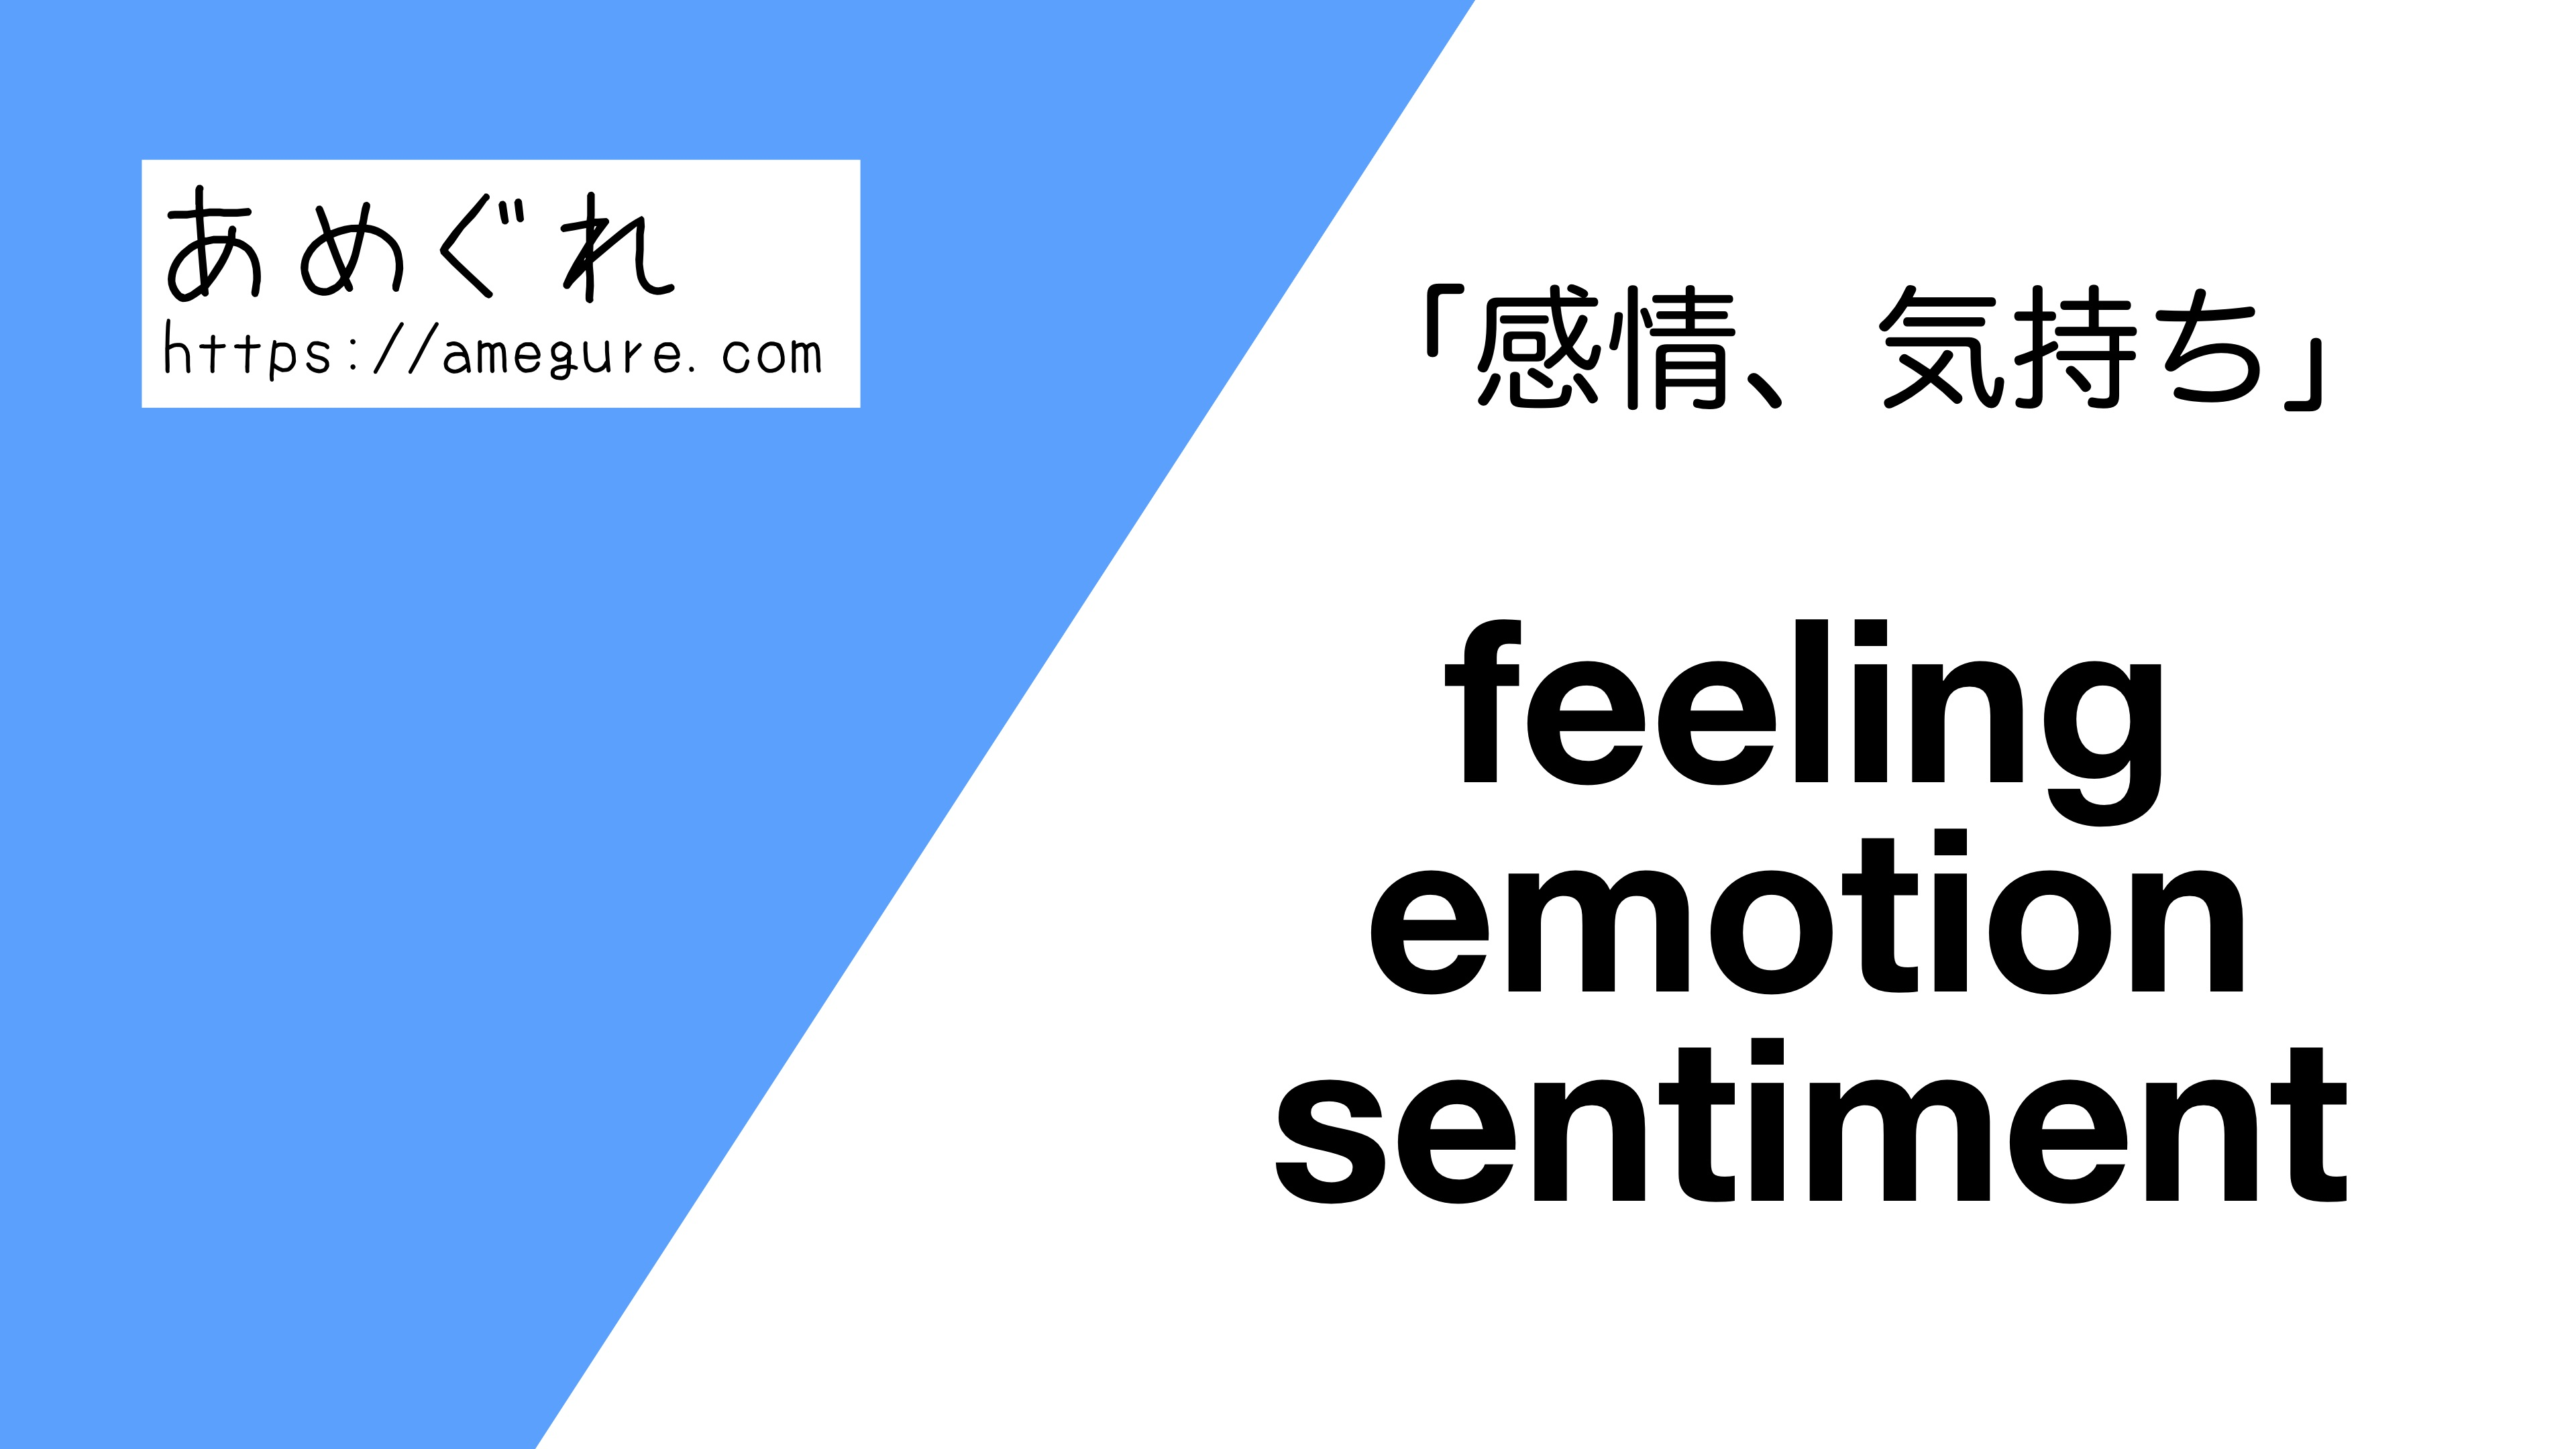 feeling-emotion-sentiment違い